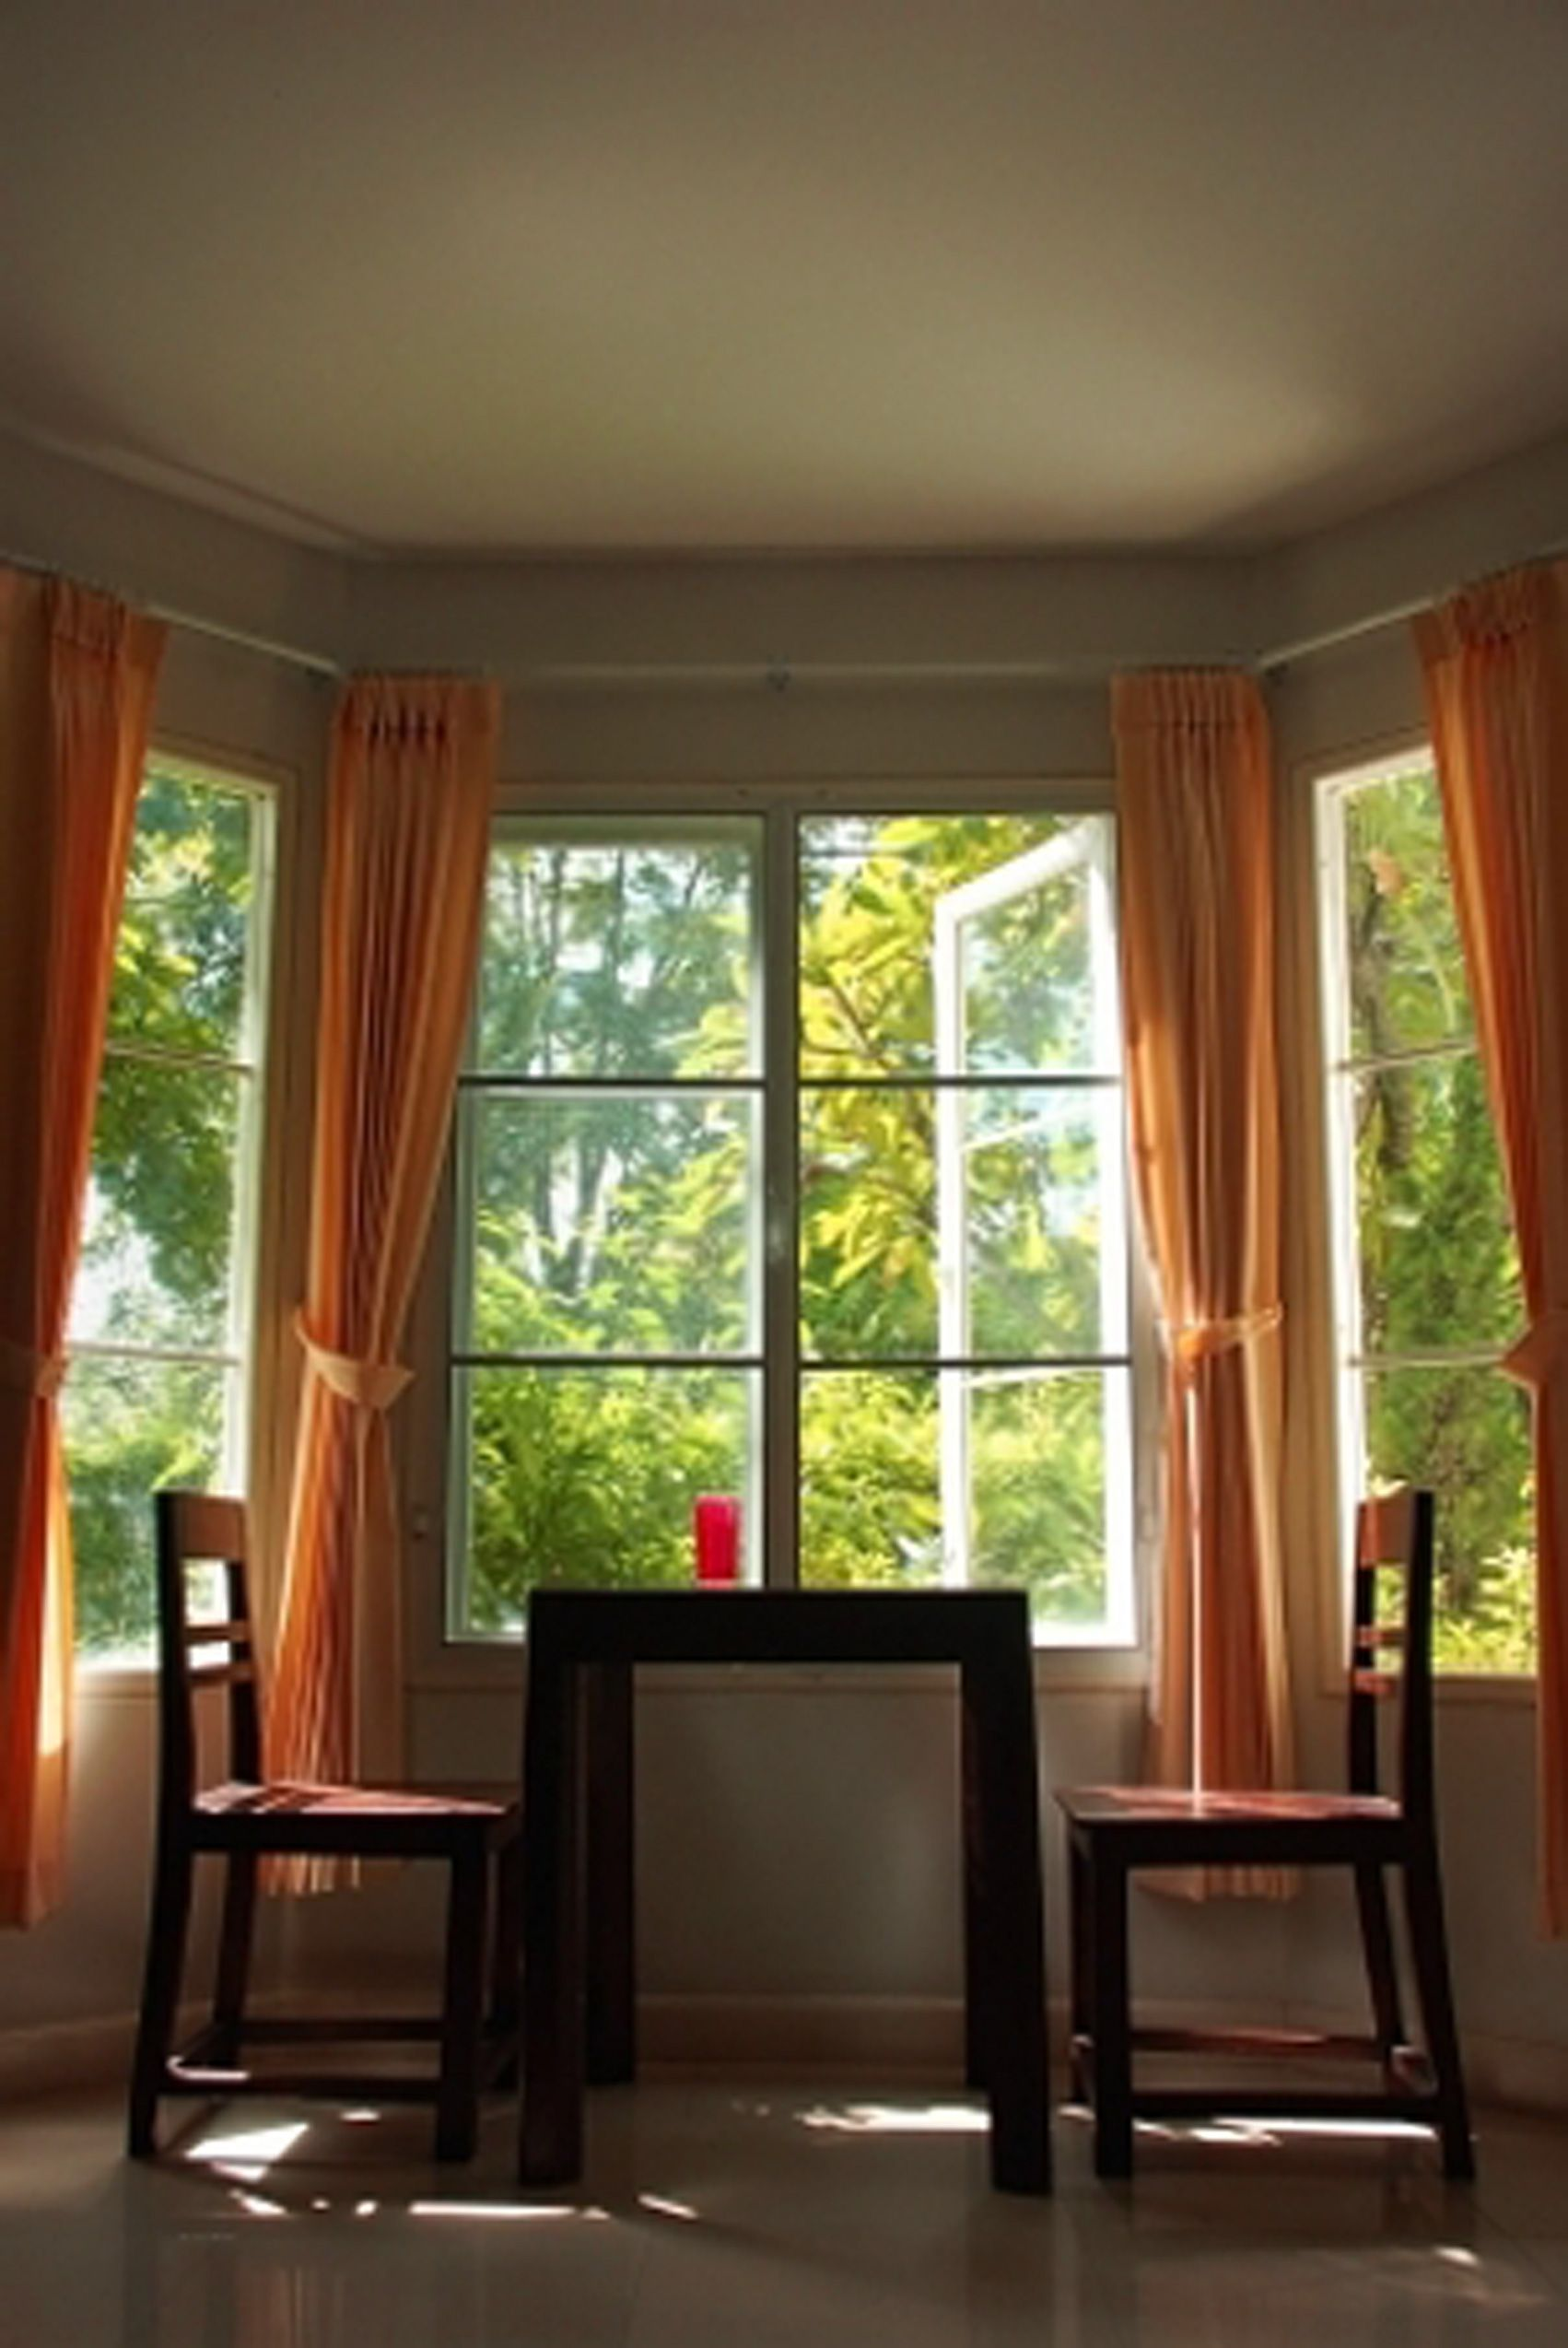 Merveilleux Curtains For Bay Windows Idea  In The Daytime, Do This In The Sunroom.